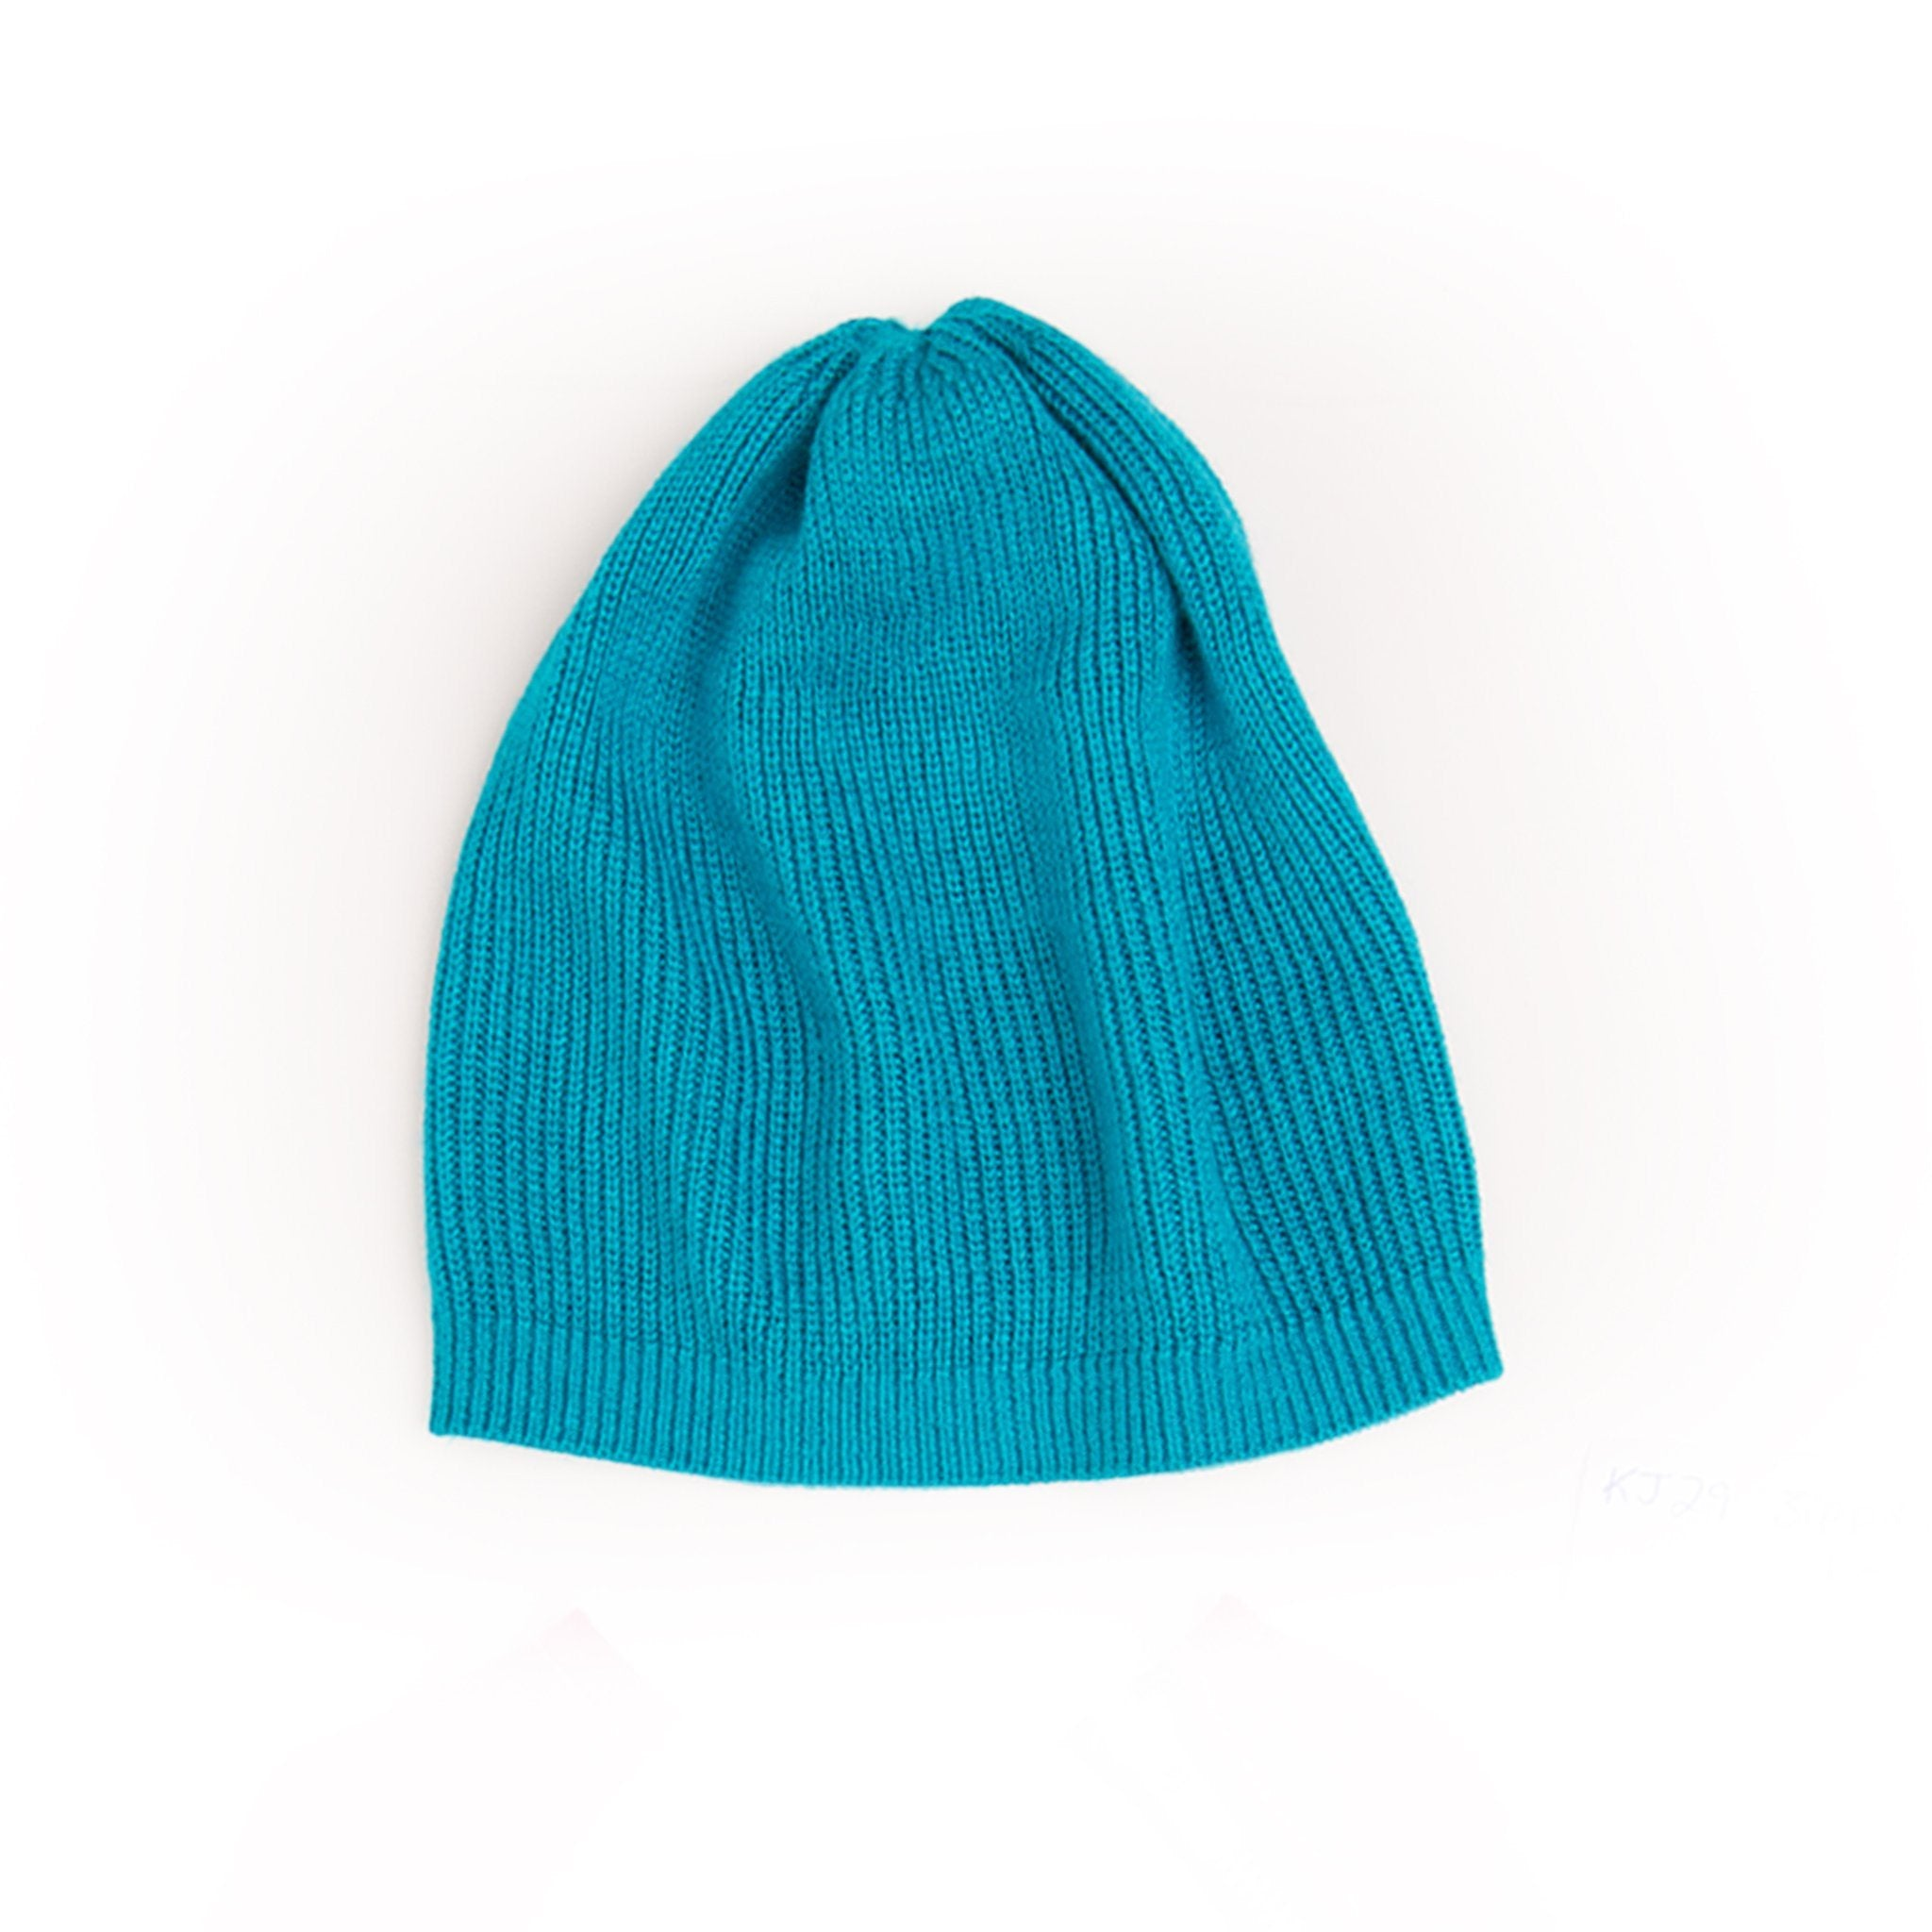 Zippity Do teal slouchy hat fits all 18 inch dolls.